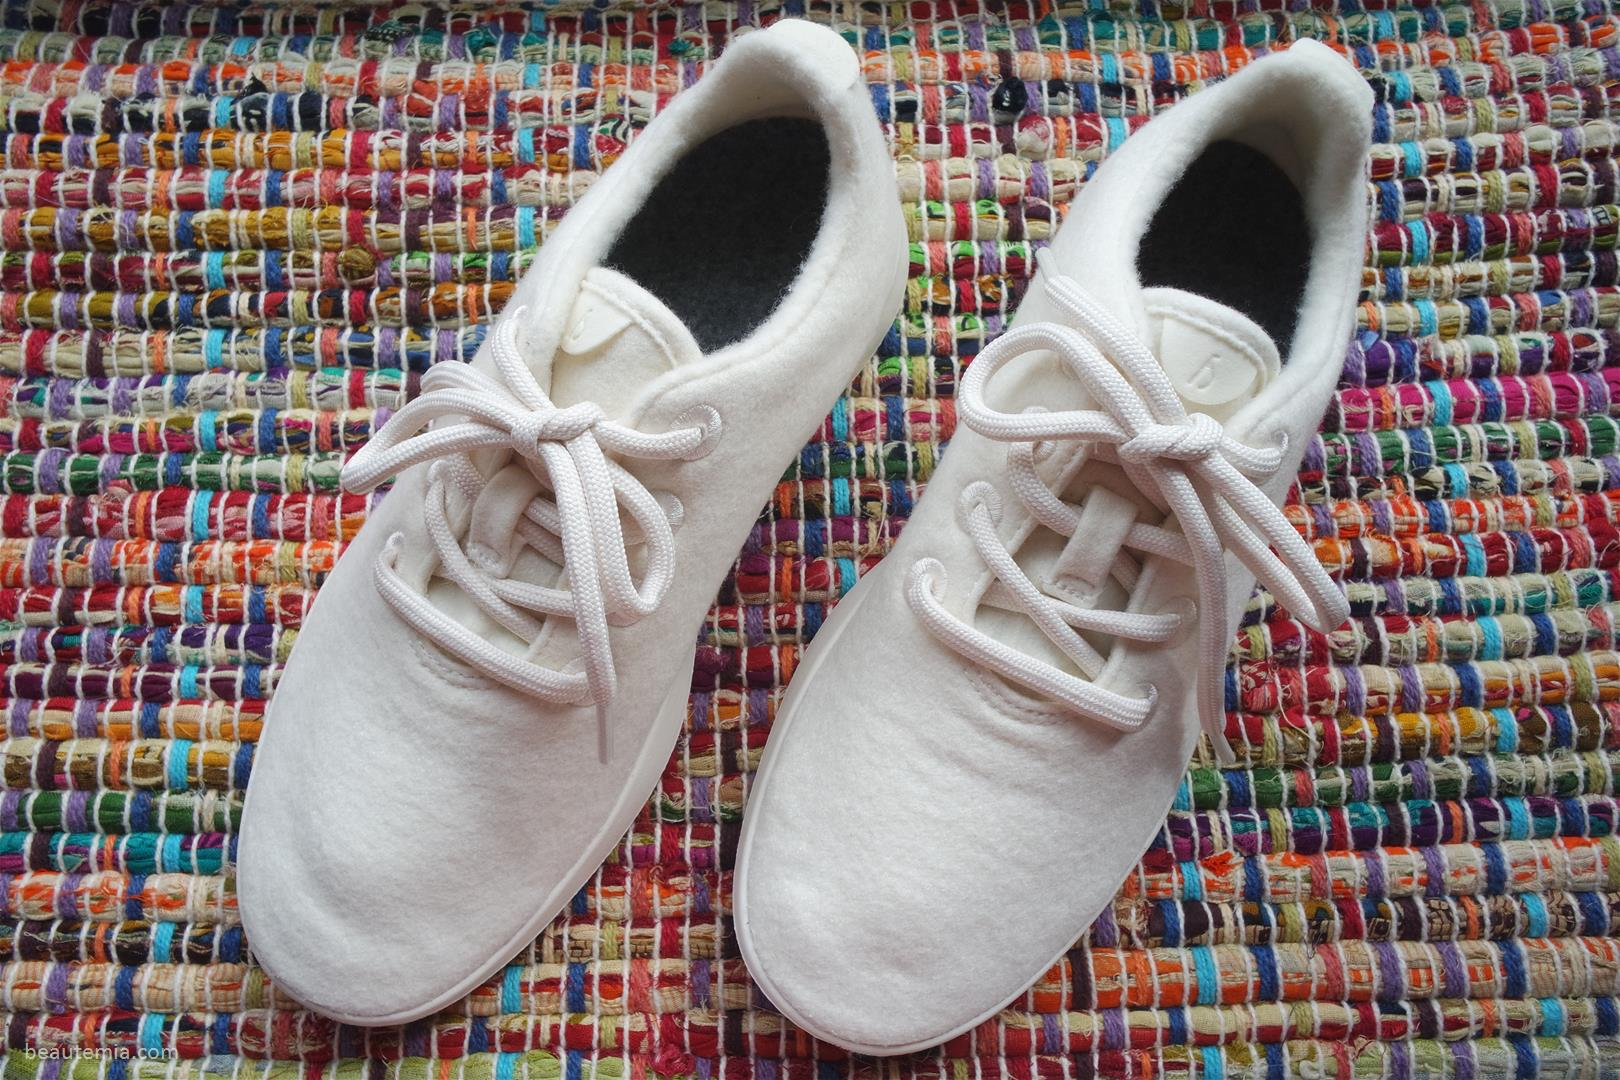 Allbirds Wool Runner Shoes, comfortable shoes for wide feet, Allbirds shoes, Nordstrom pop-in, Nike & UGG Australia